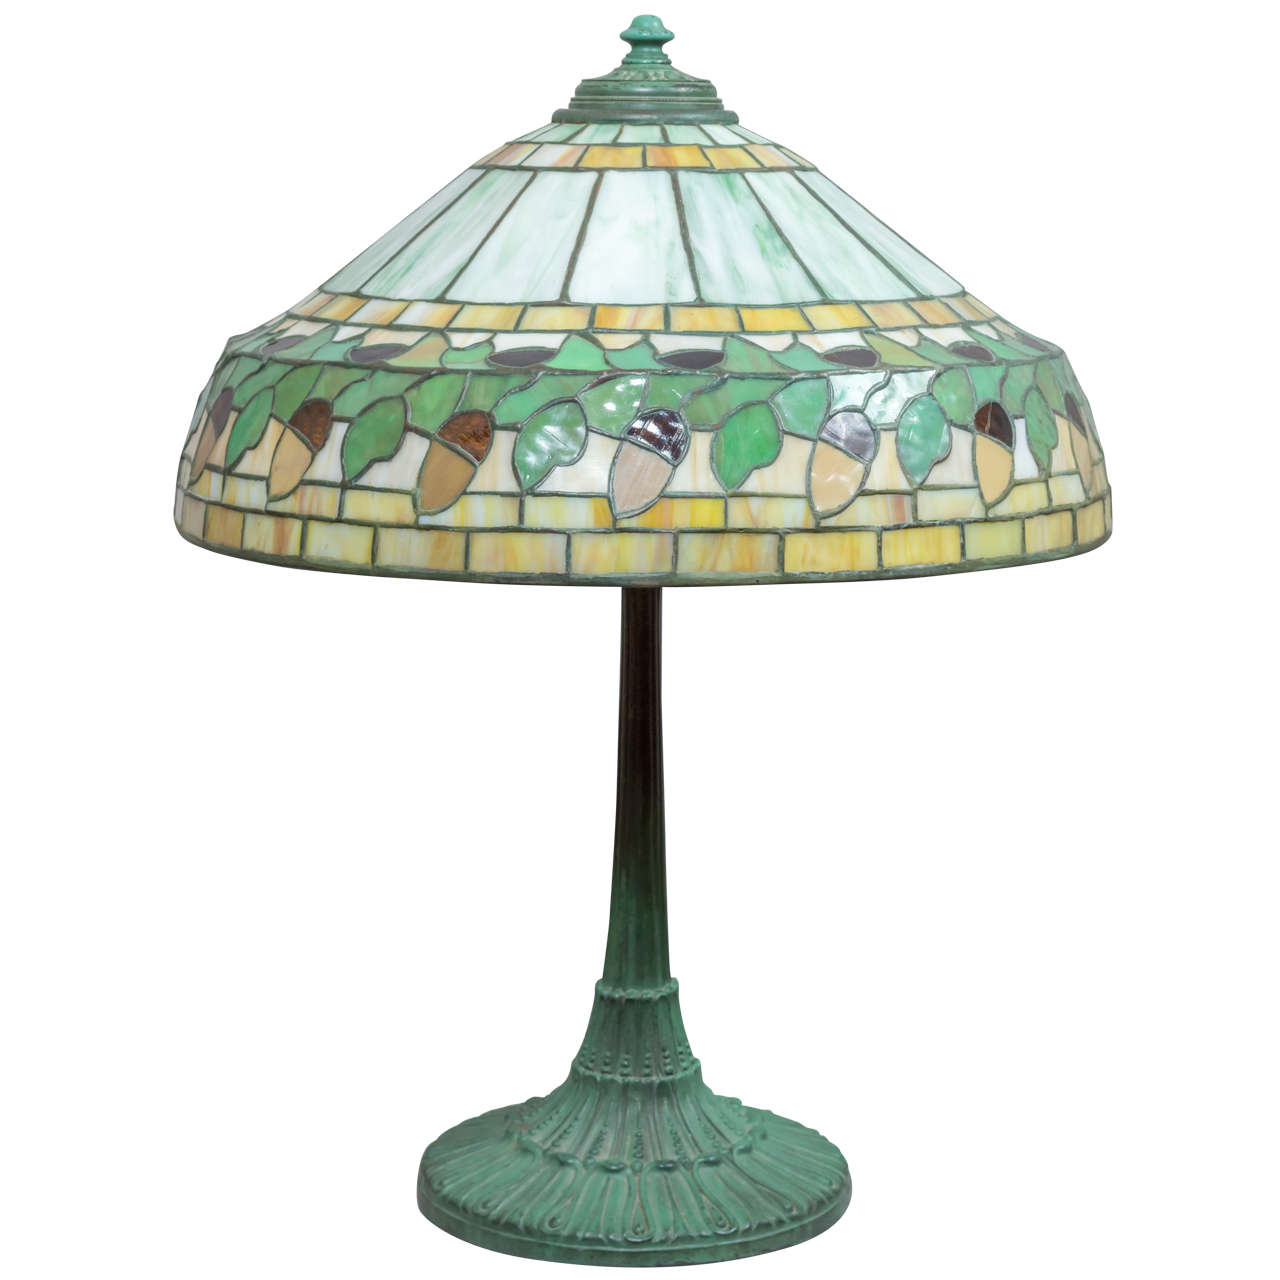 Leaded glass table lamp by wilkinson at 1stdibs this very nice example of the work of the wilkinson company is a rare model aloadofball Choice Image